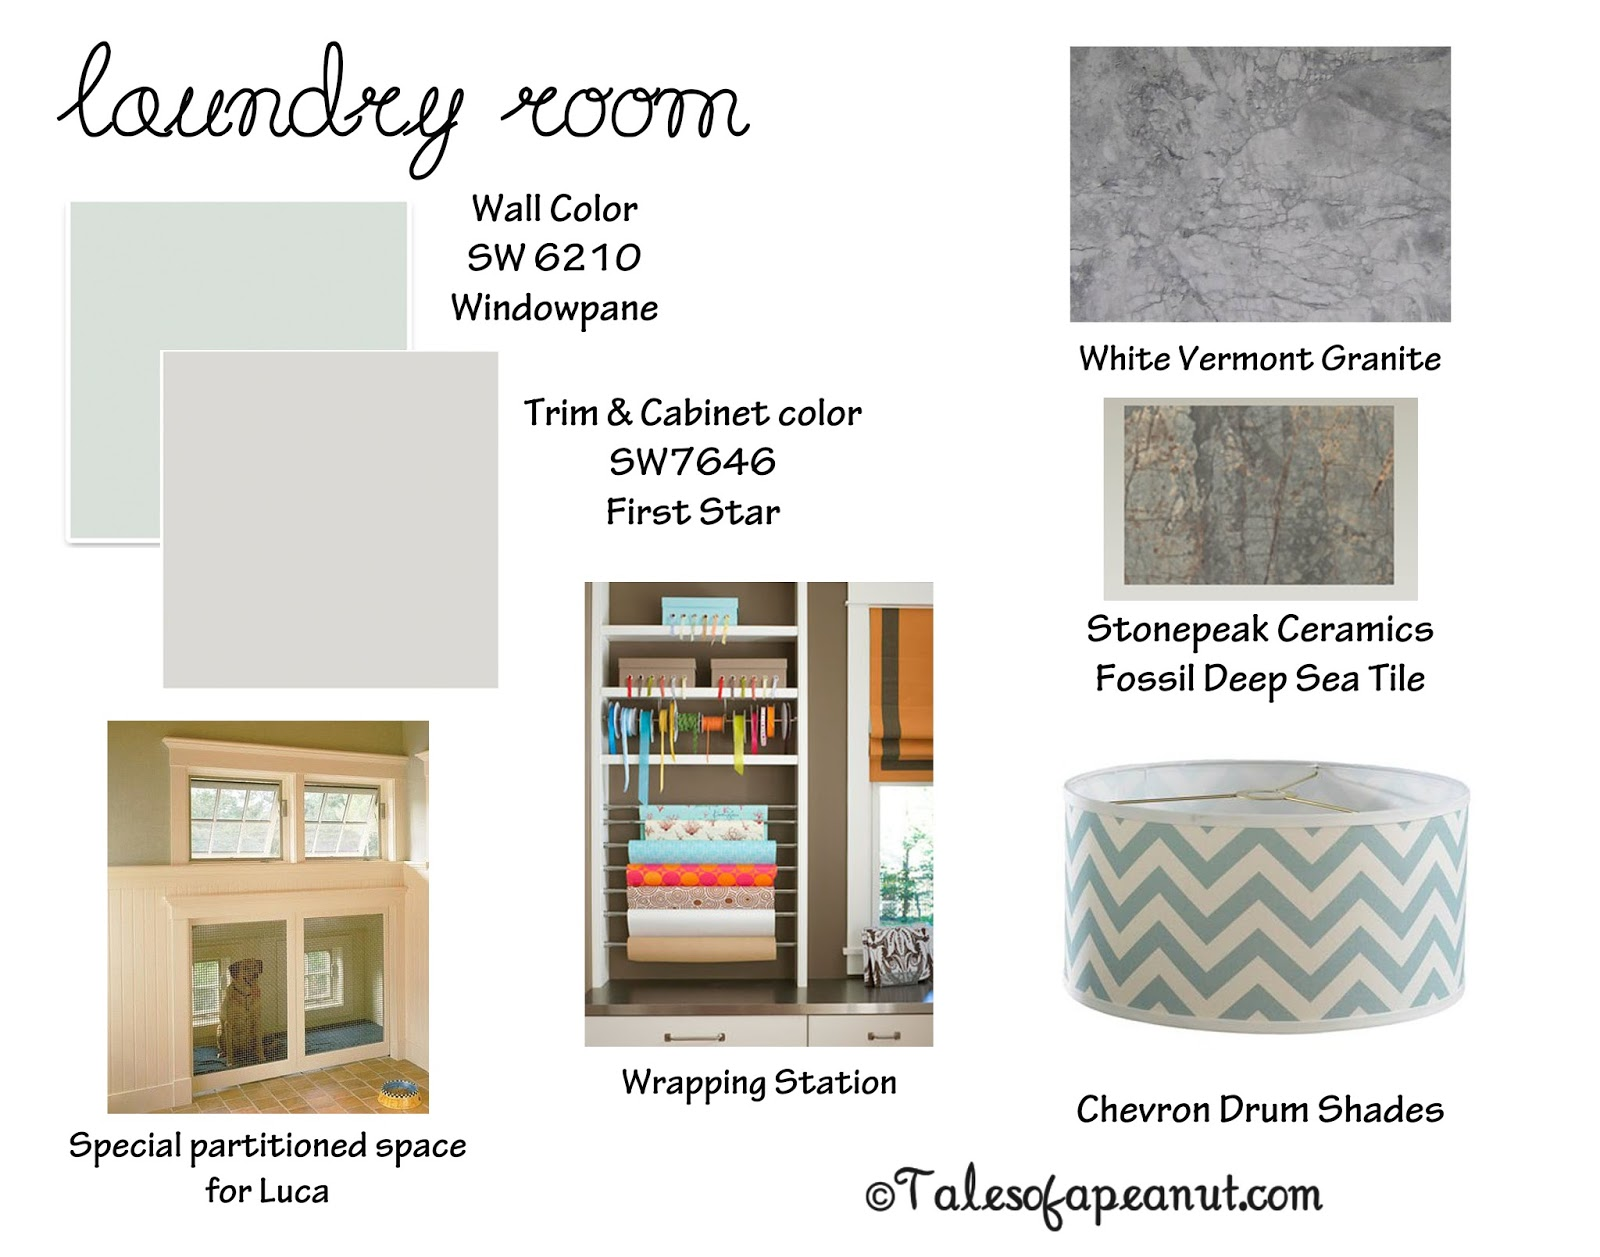 Building a Home - Laundry Room Reveal - Jenn Elwell